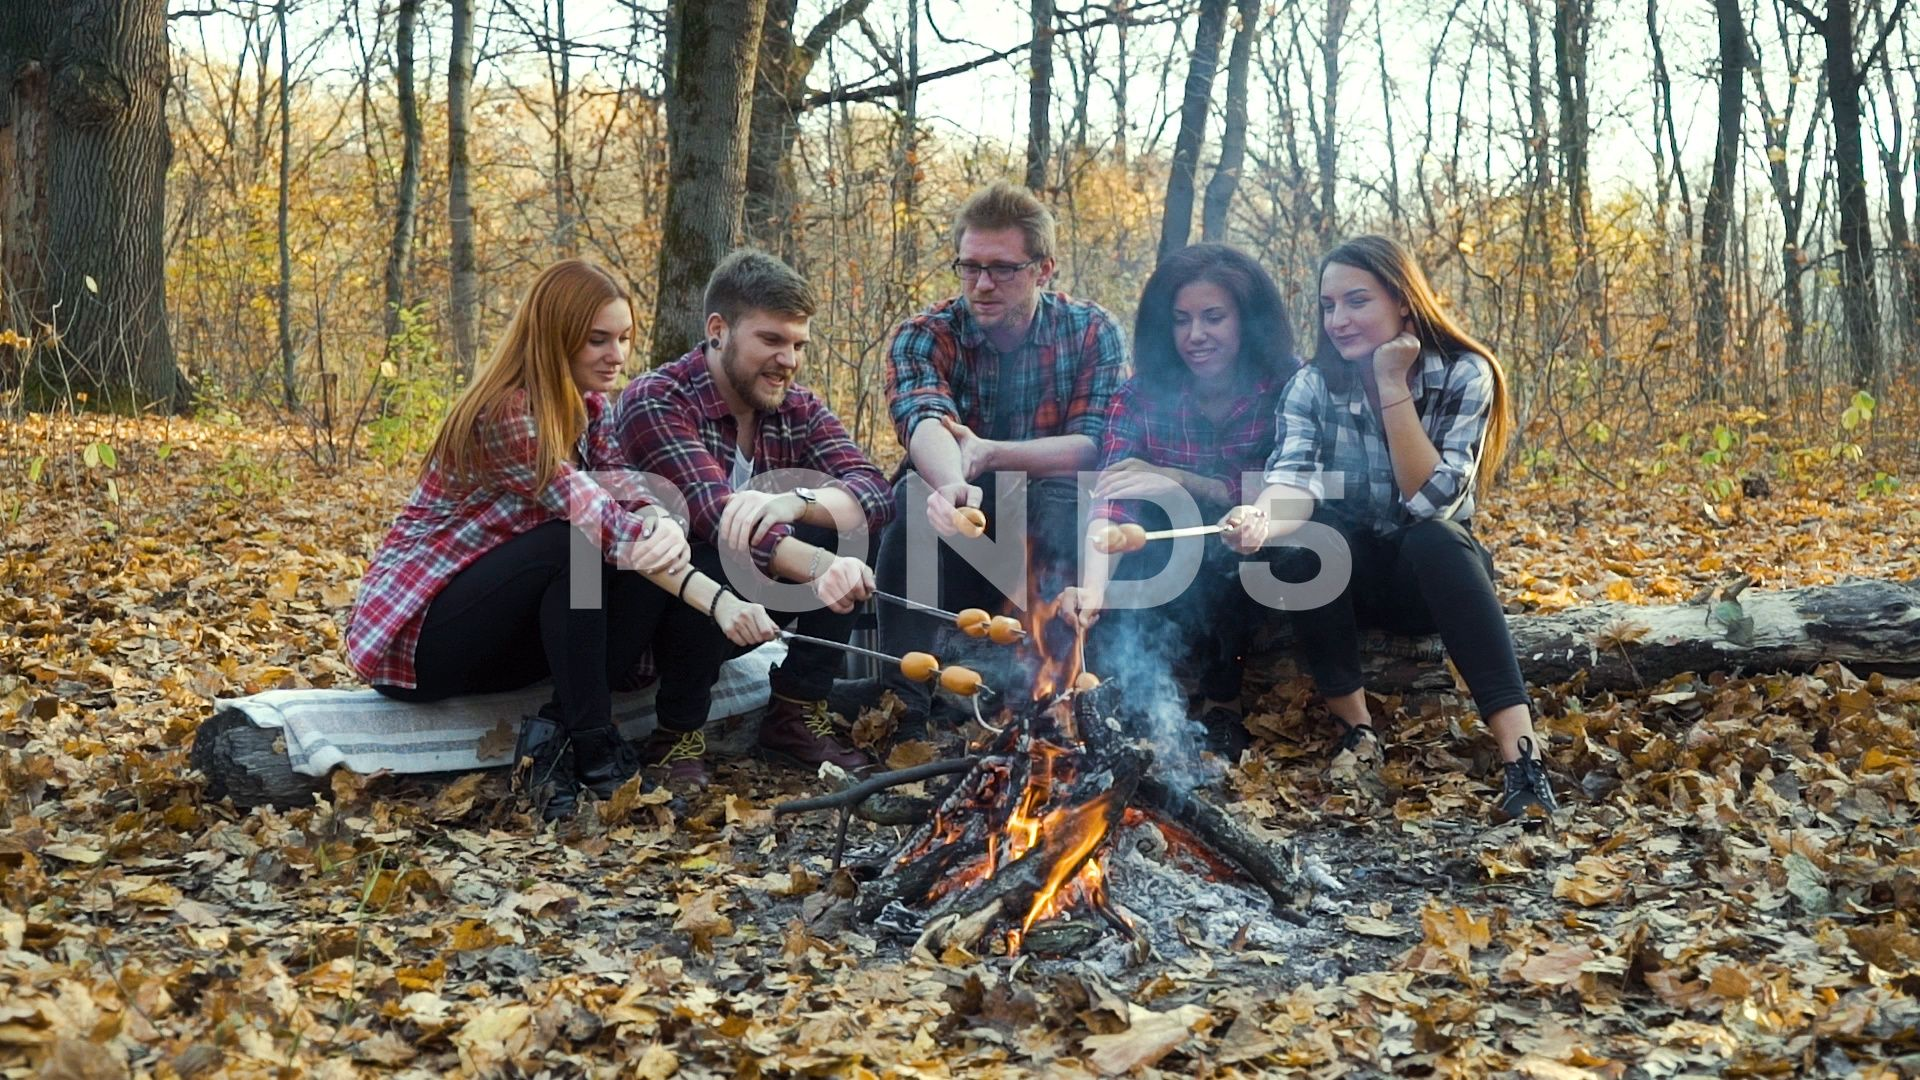 Campers roasting sausages on open fire in autumn forest Stock Footage ,#sausages#open#Campers#roast